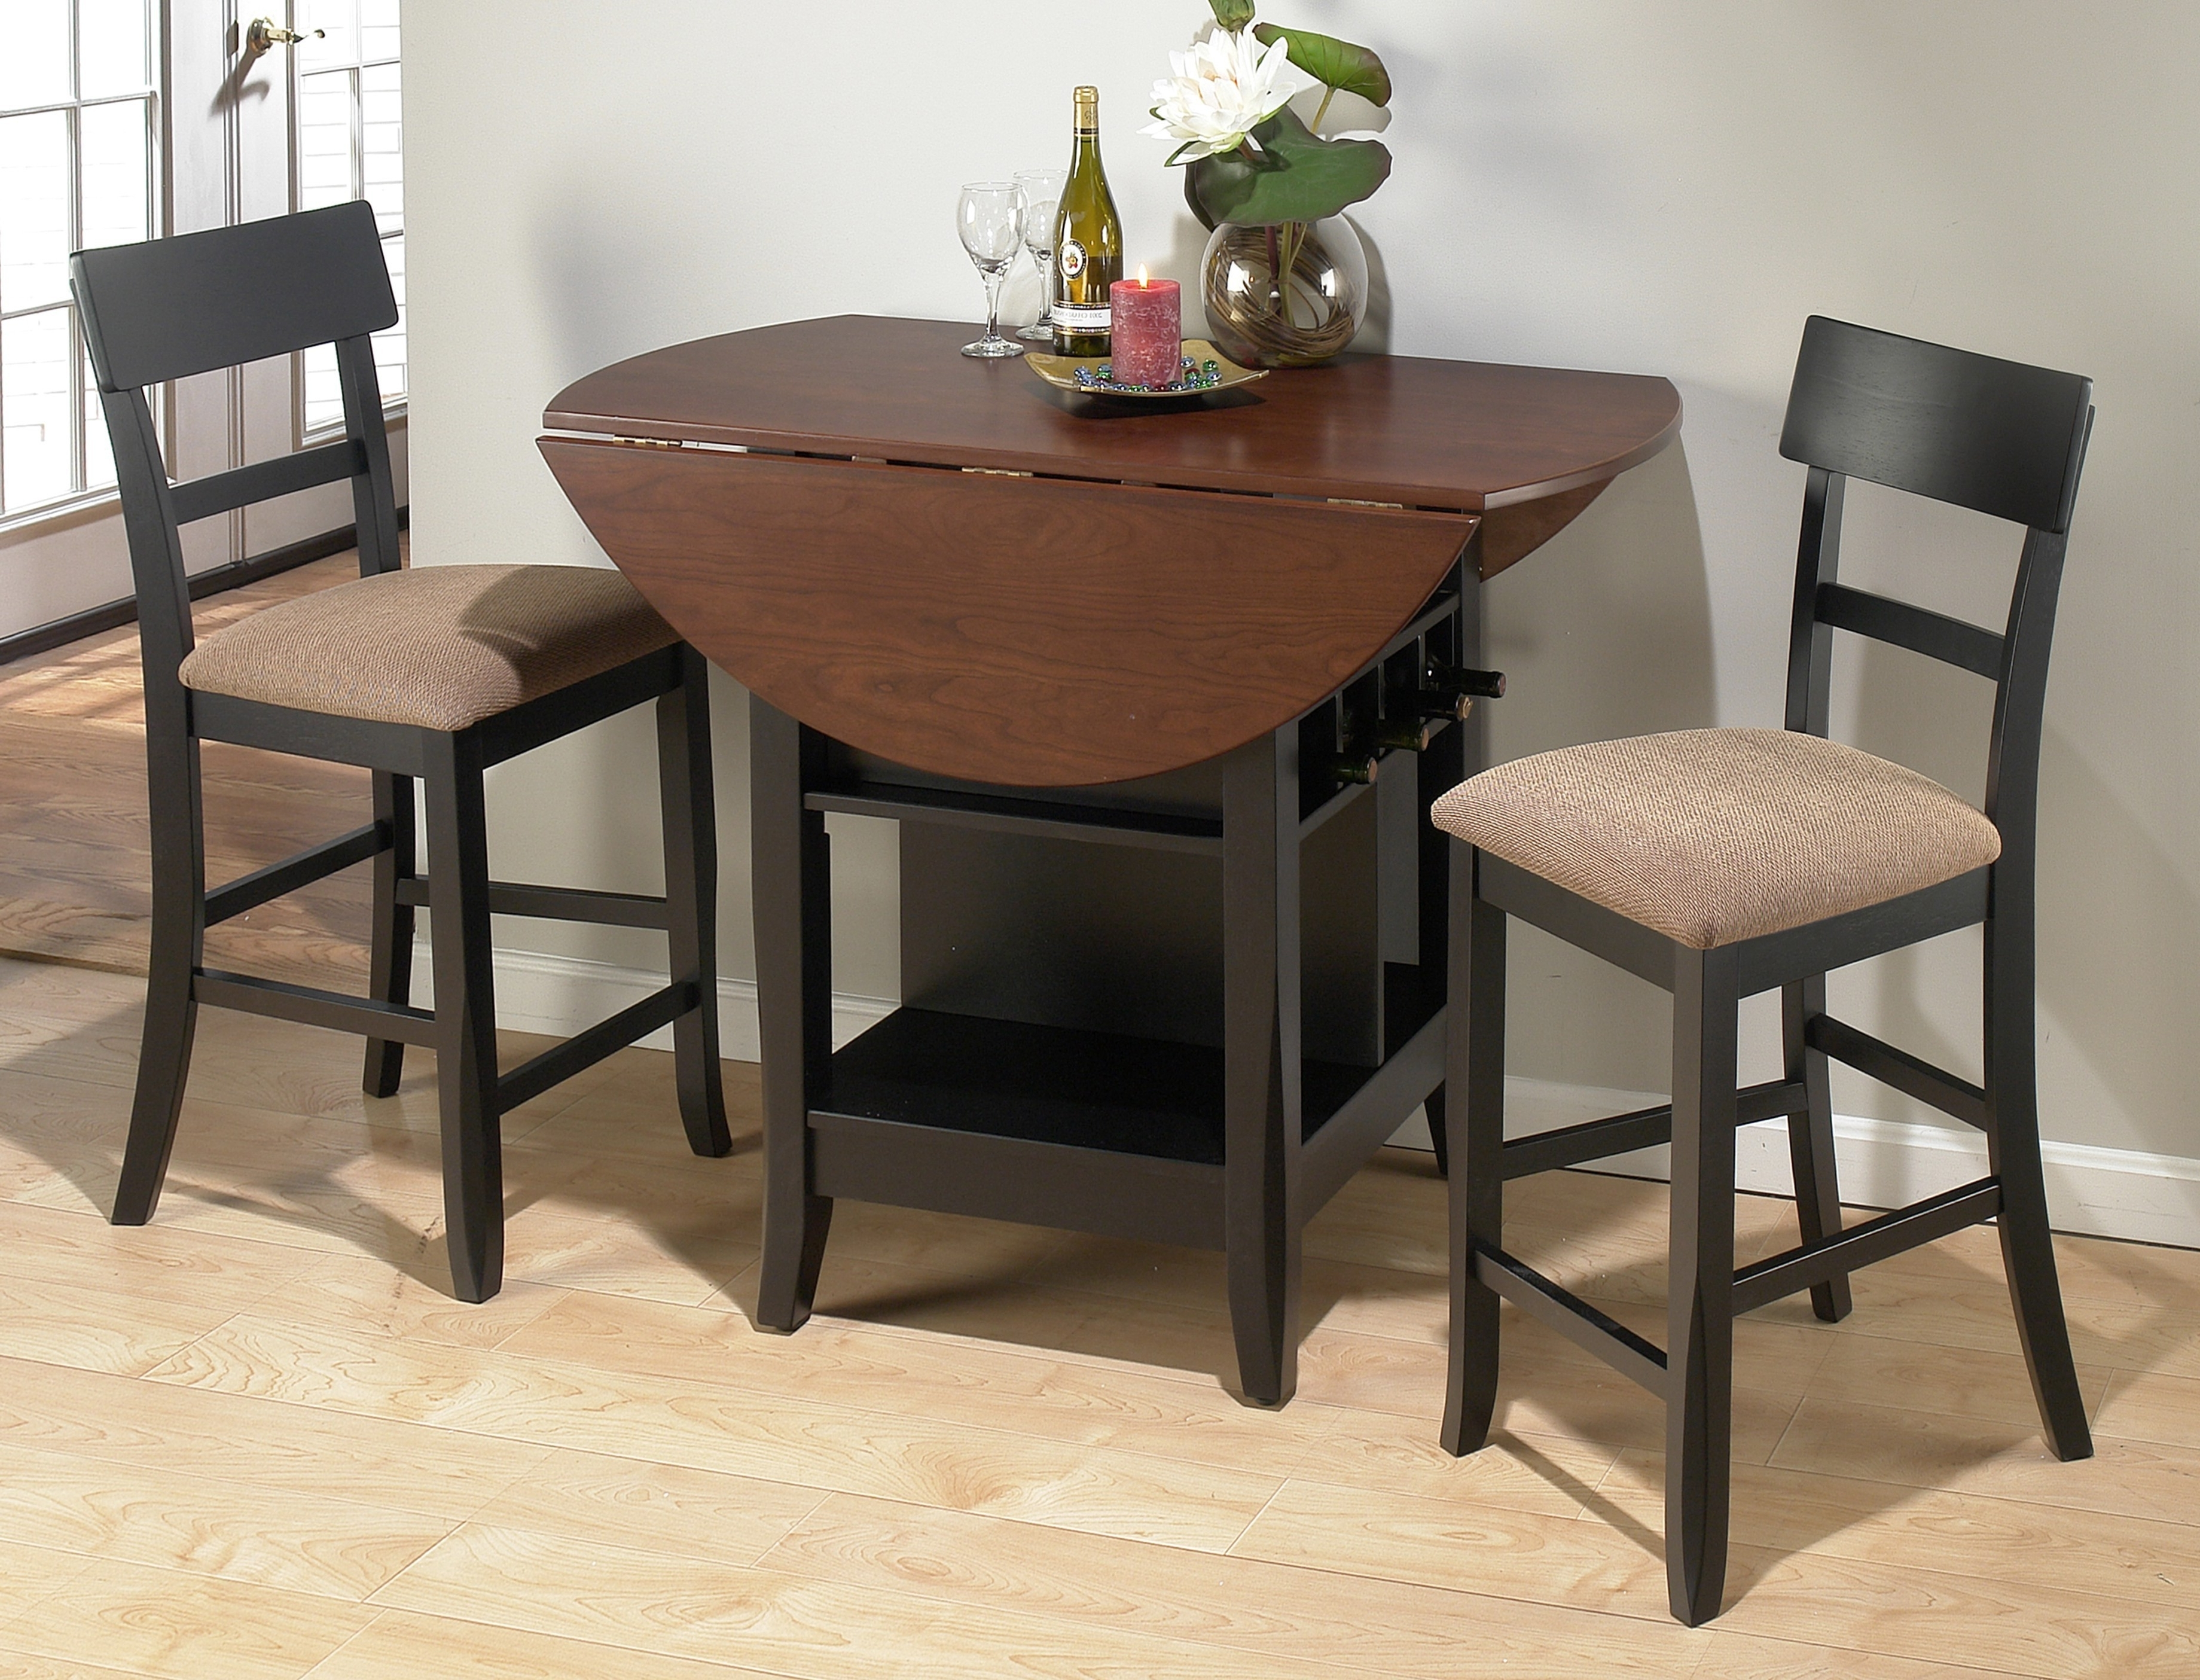 2018 Small Round Dining Table With 4 Chairs For Small Round Dining Table For 4 Fresh Square To Round Dining Table (View 1 of 25)